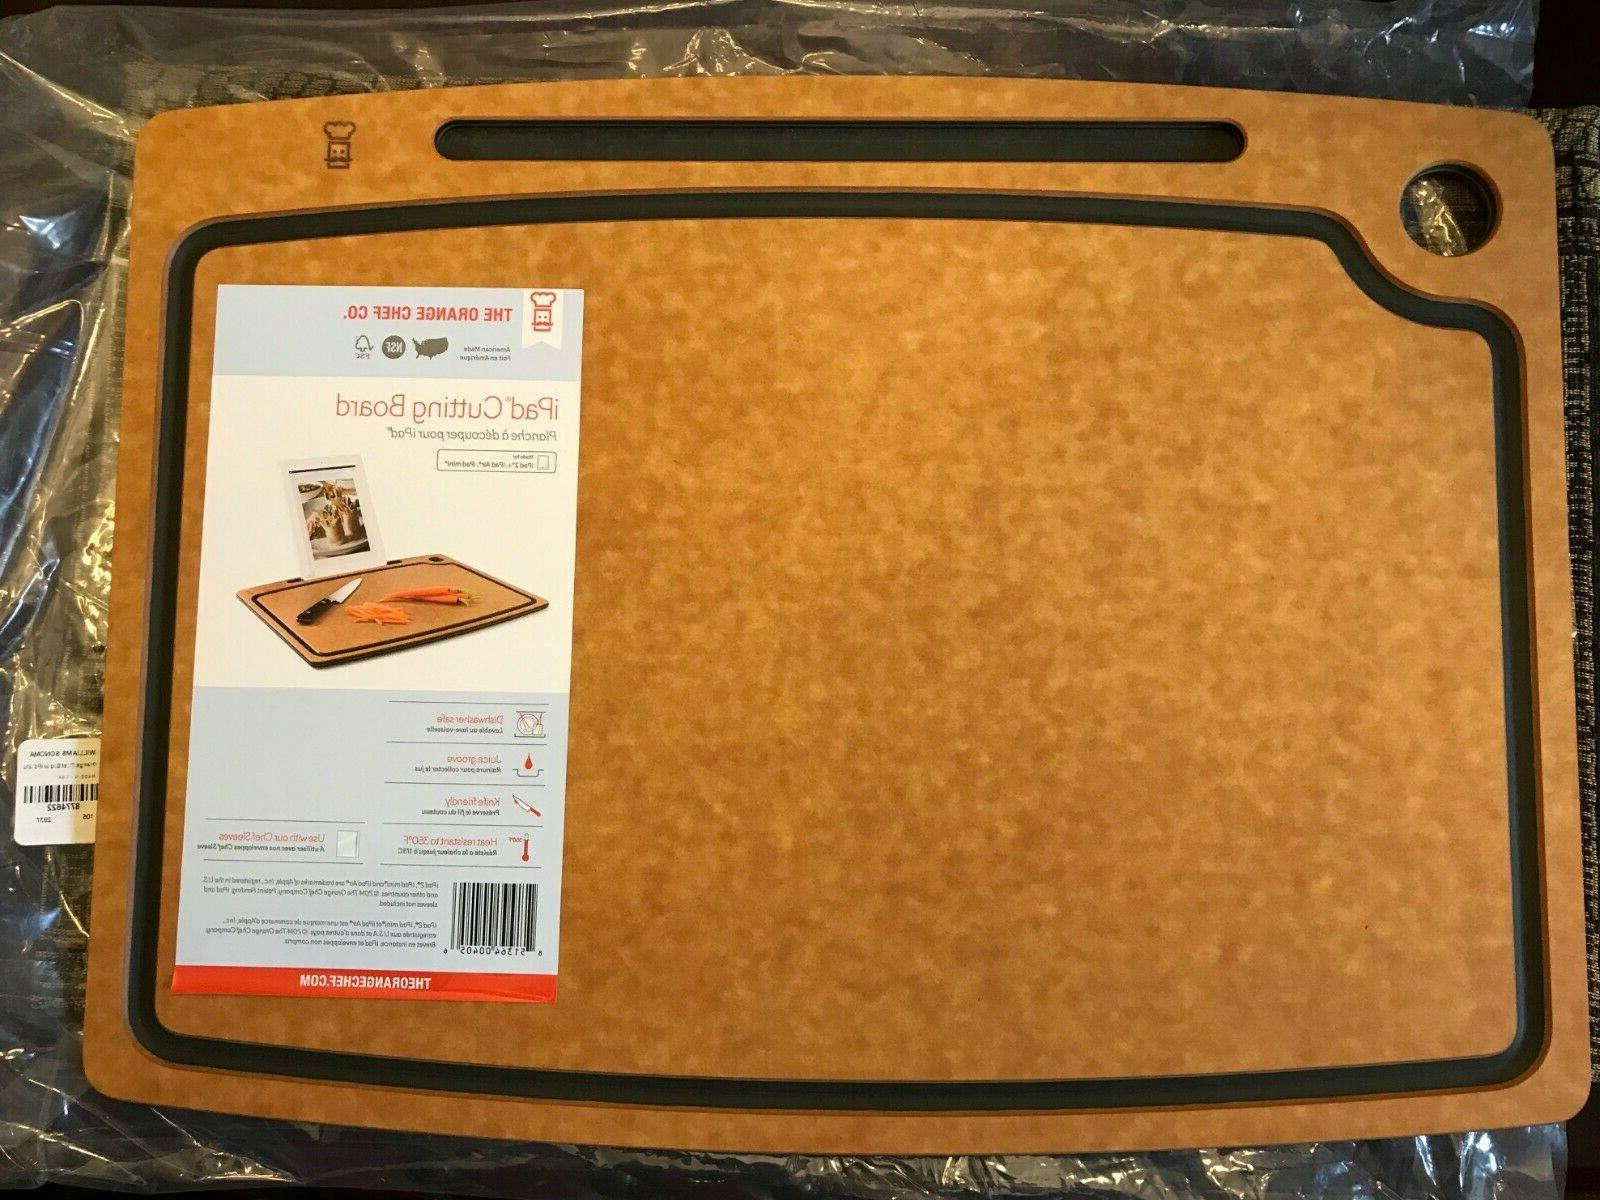 the cutting board with ipad stand black